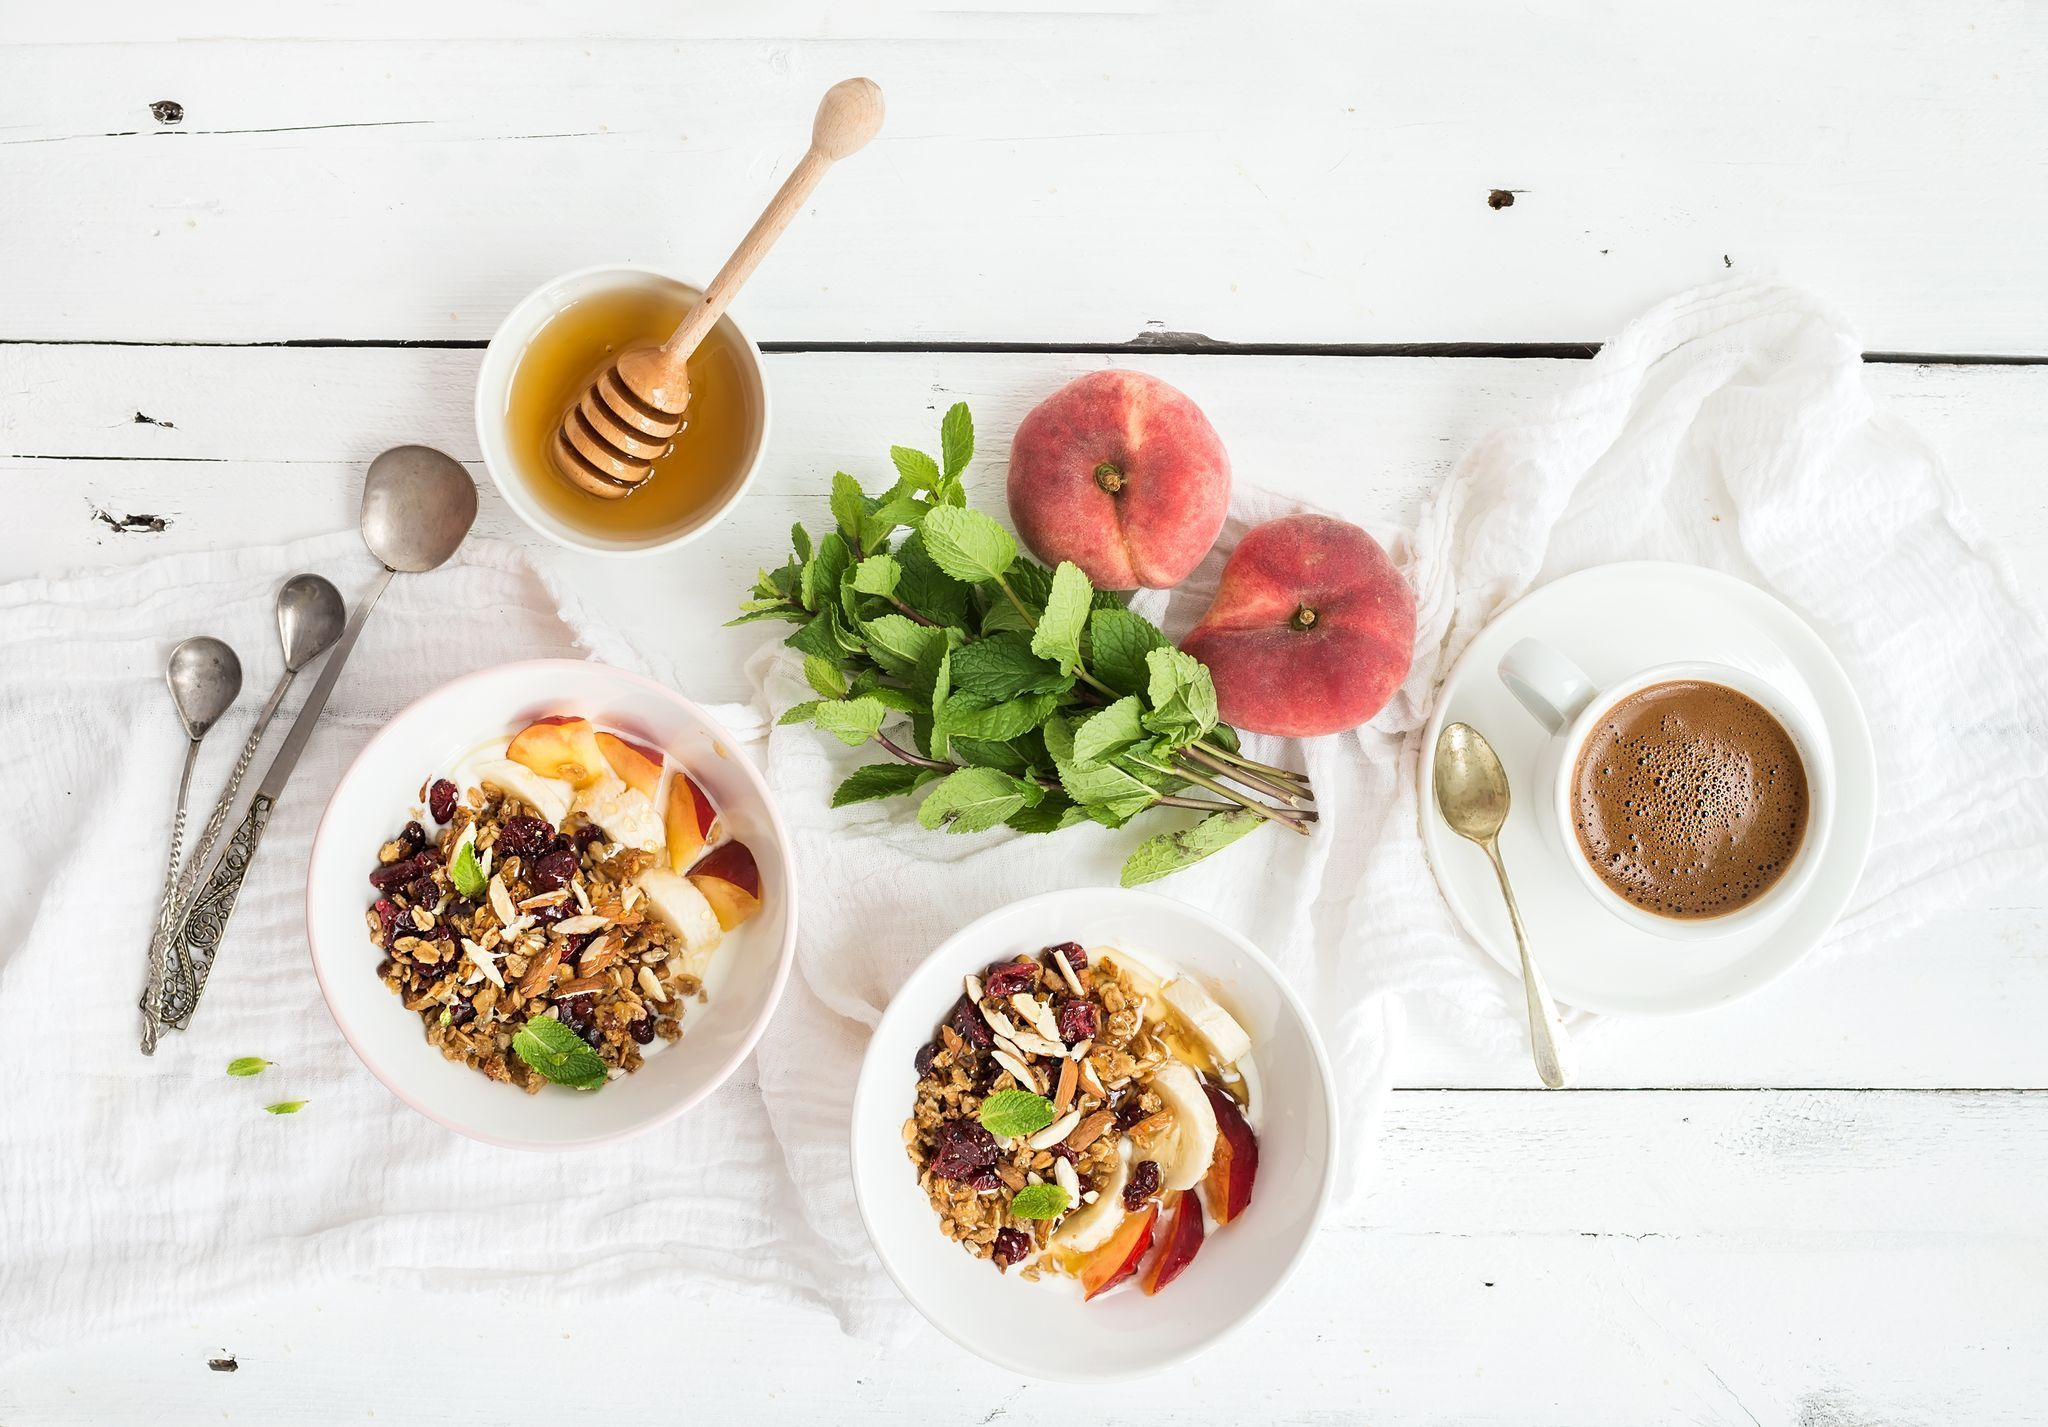 It's February already! Good morning!! www.WildFoods.co  #wildfoods #wildfoodsco #livewild #thewildway #february #breakfast #health #recipe #organic #fairtrade #realfoods #foodismedicine